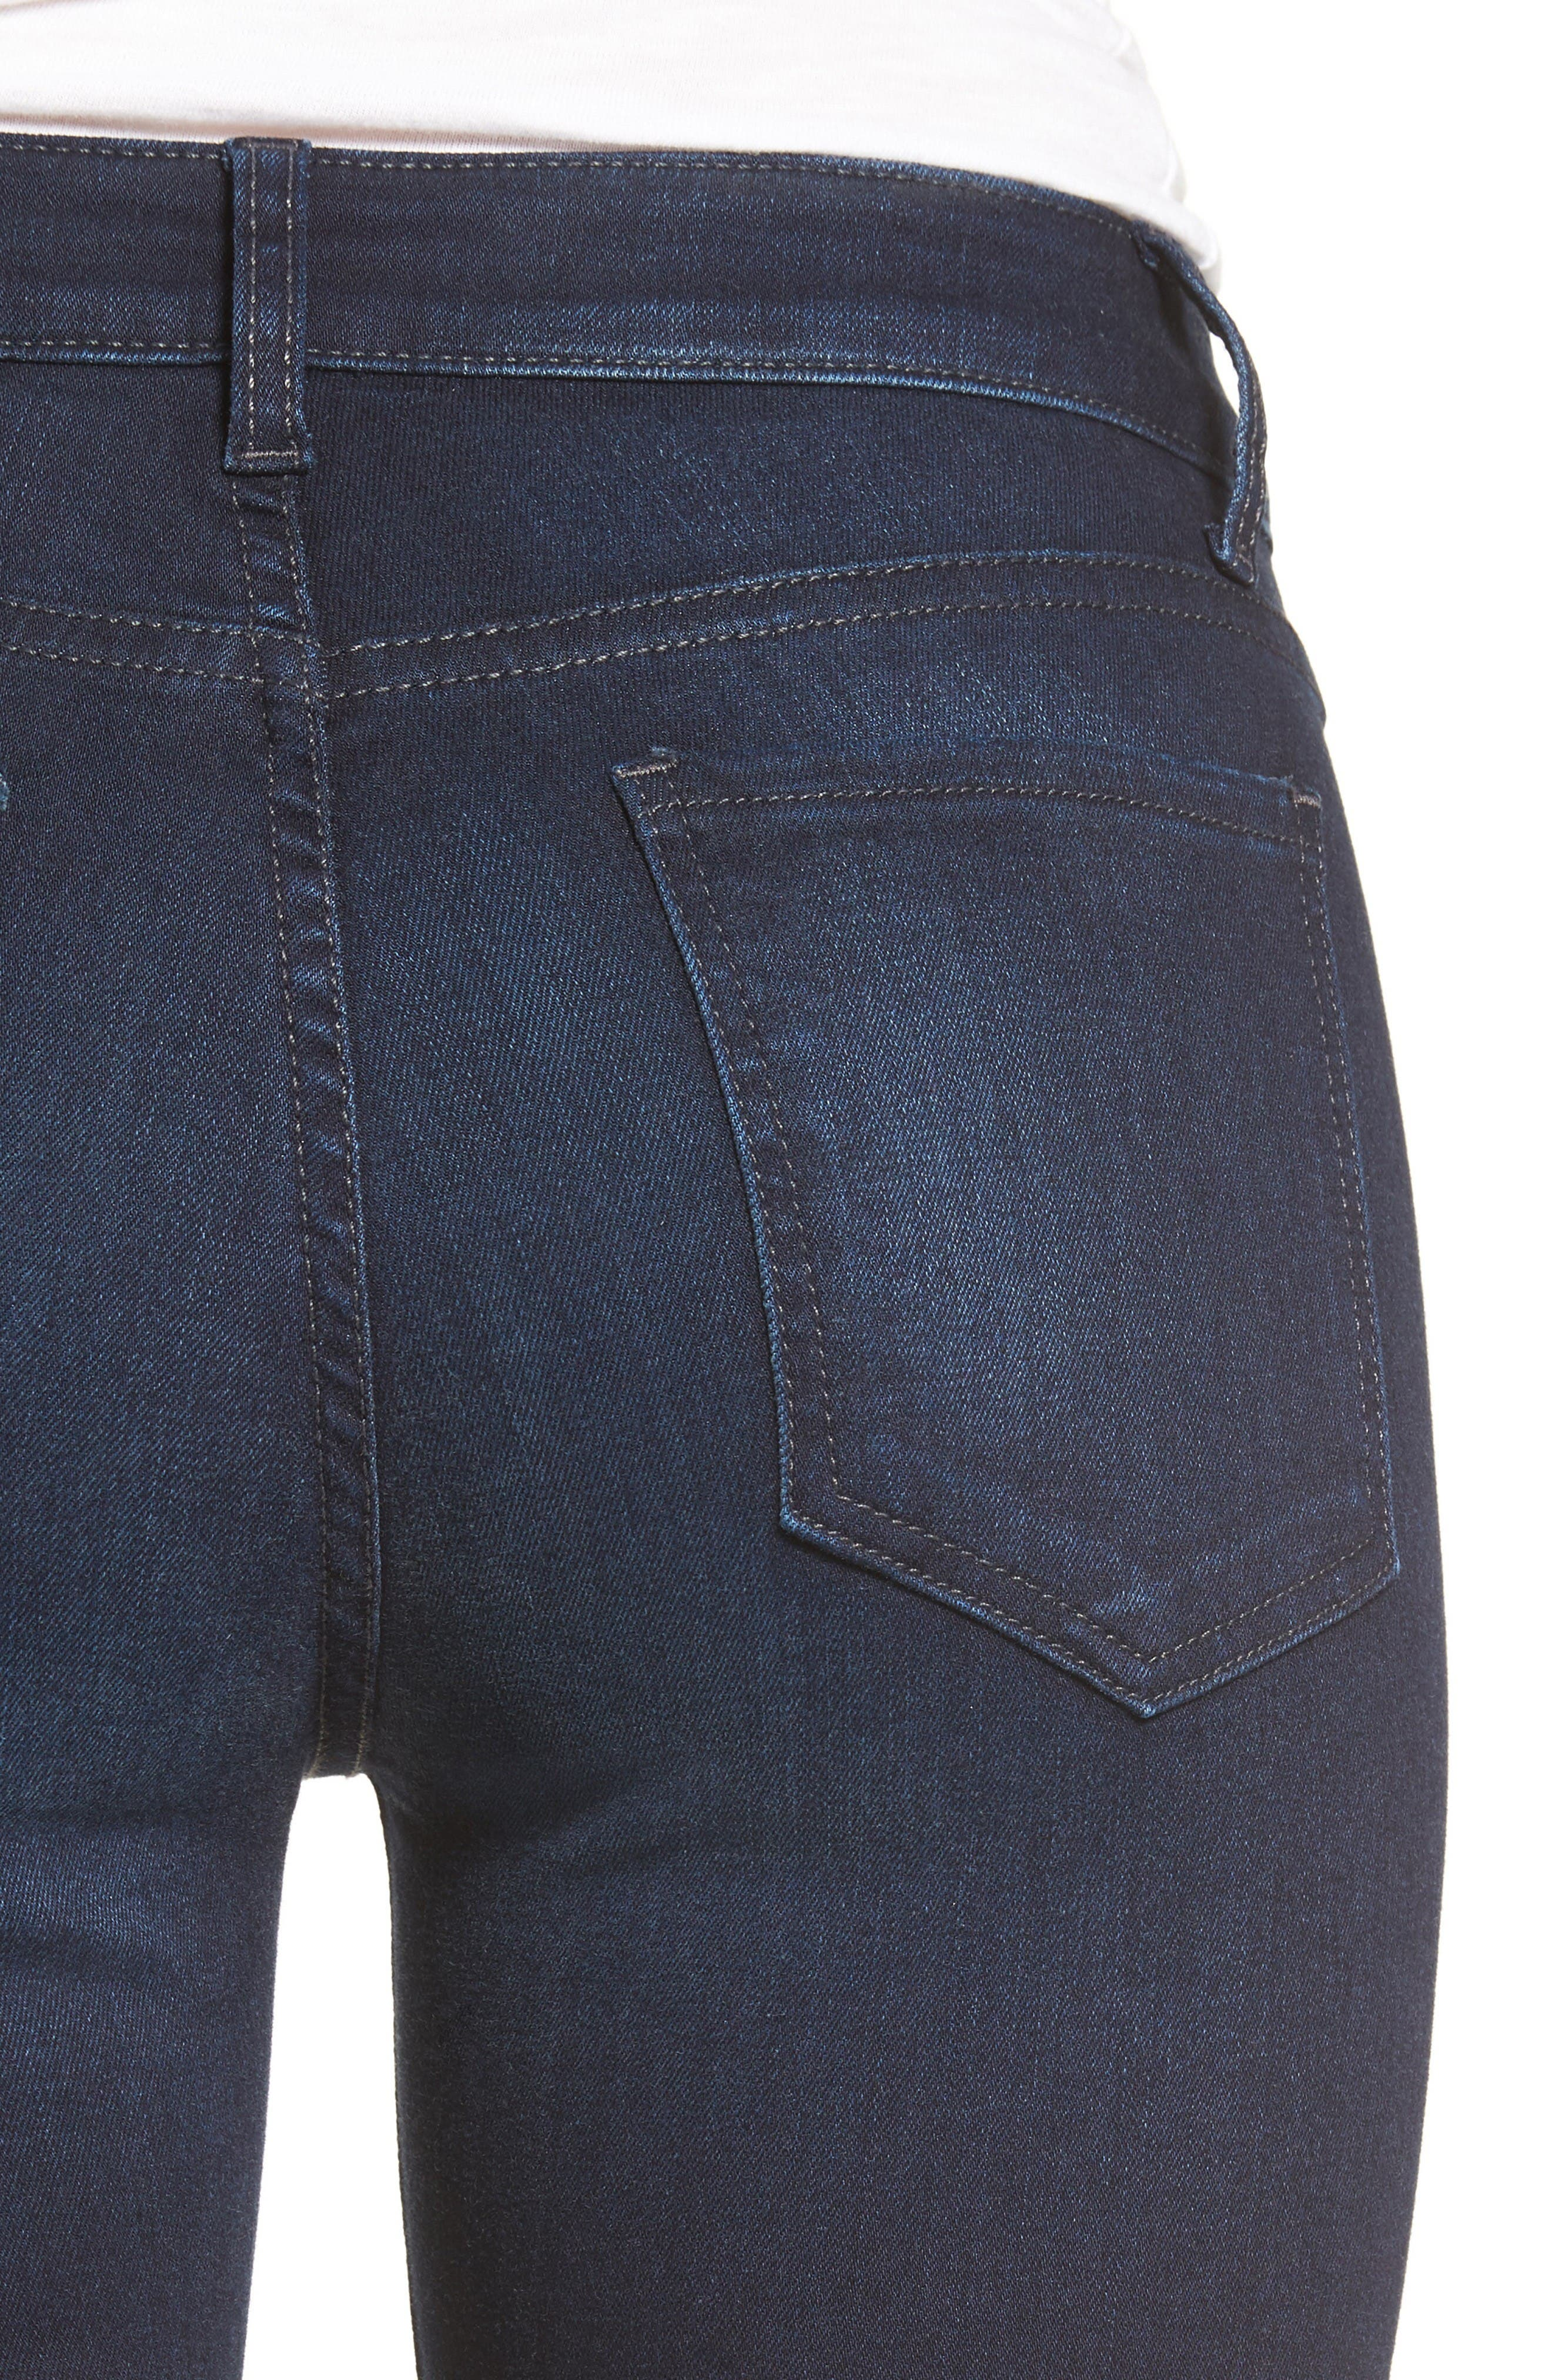 Alternate Image 4  - KUT from the Kloth Diana Stretch Skinny Jeans (Gained) (Regular & Petite)